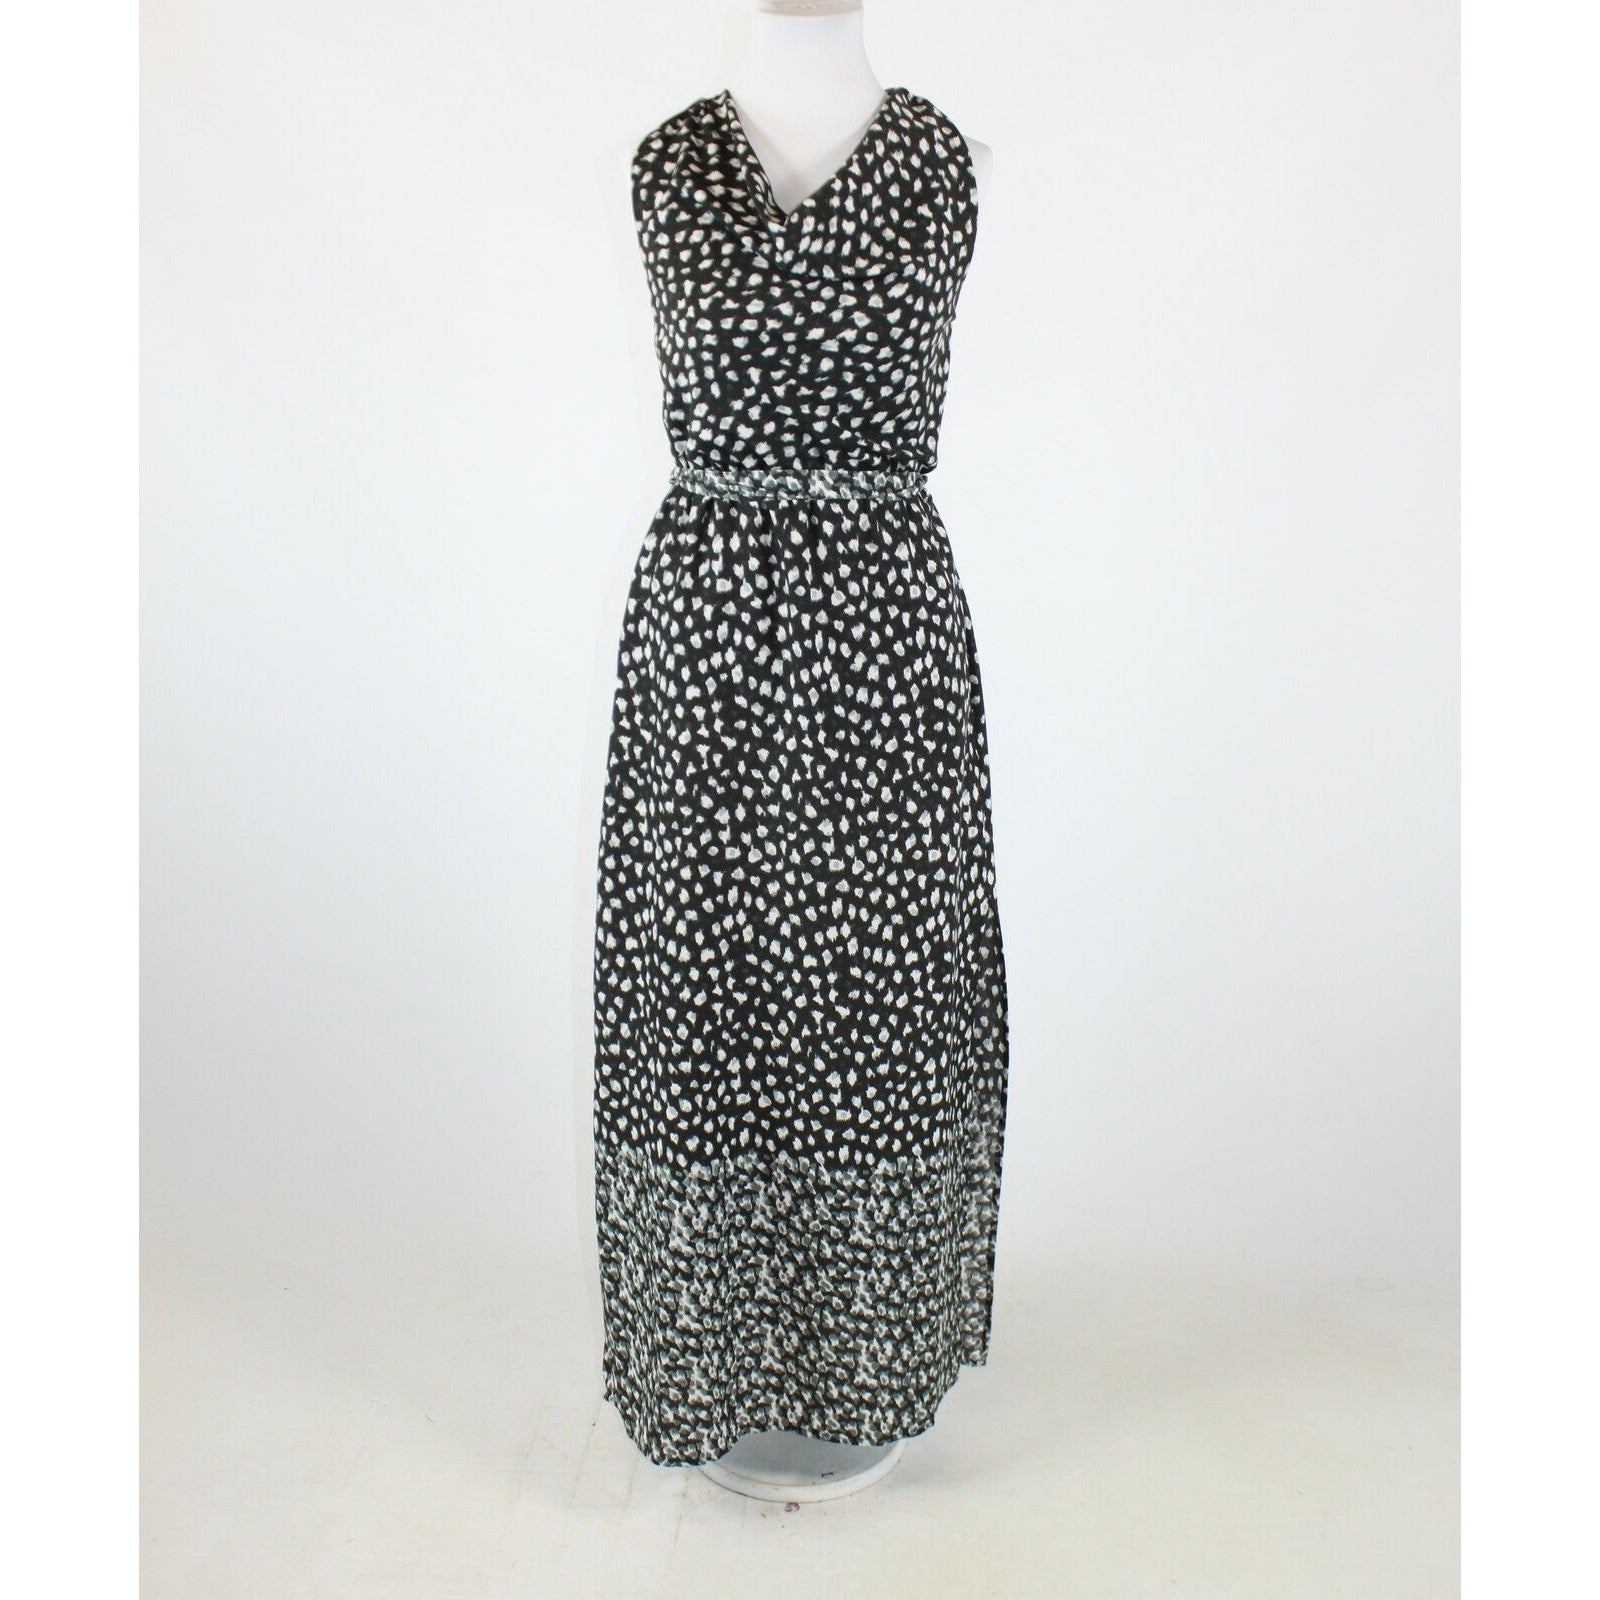 Black gray cheetah W118 BY WALTER BAKER maxi dress XS